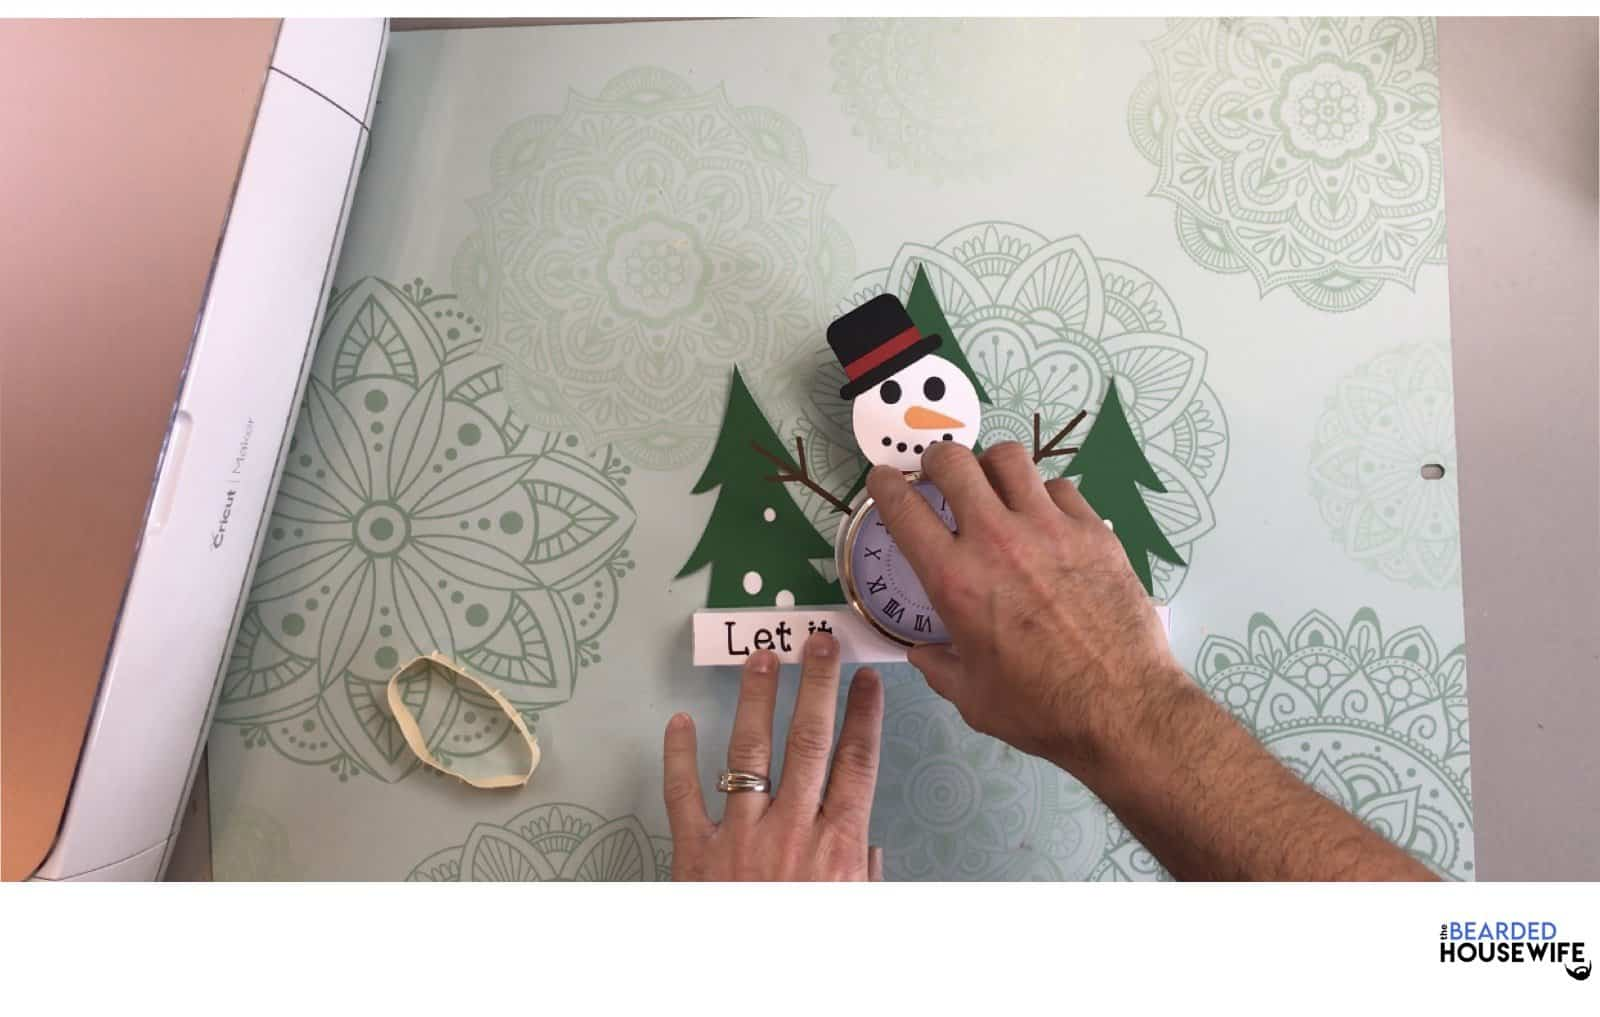 carefully insert the clock into the cavity in the snowman